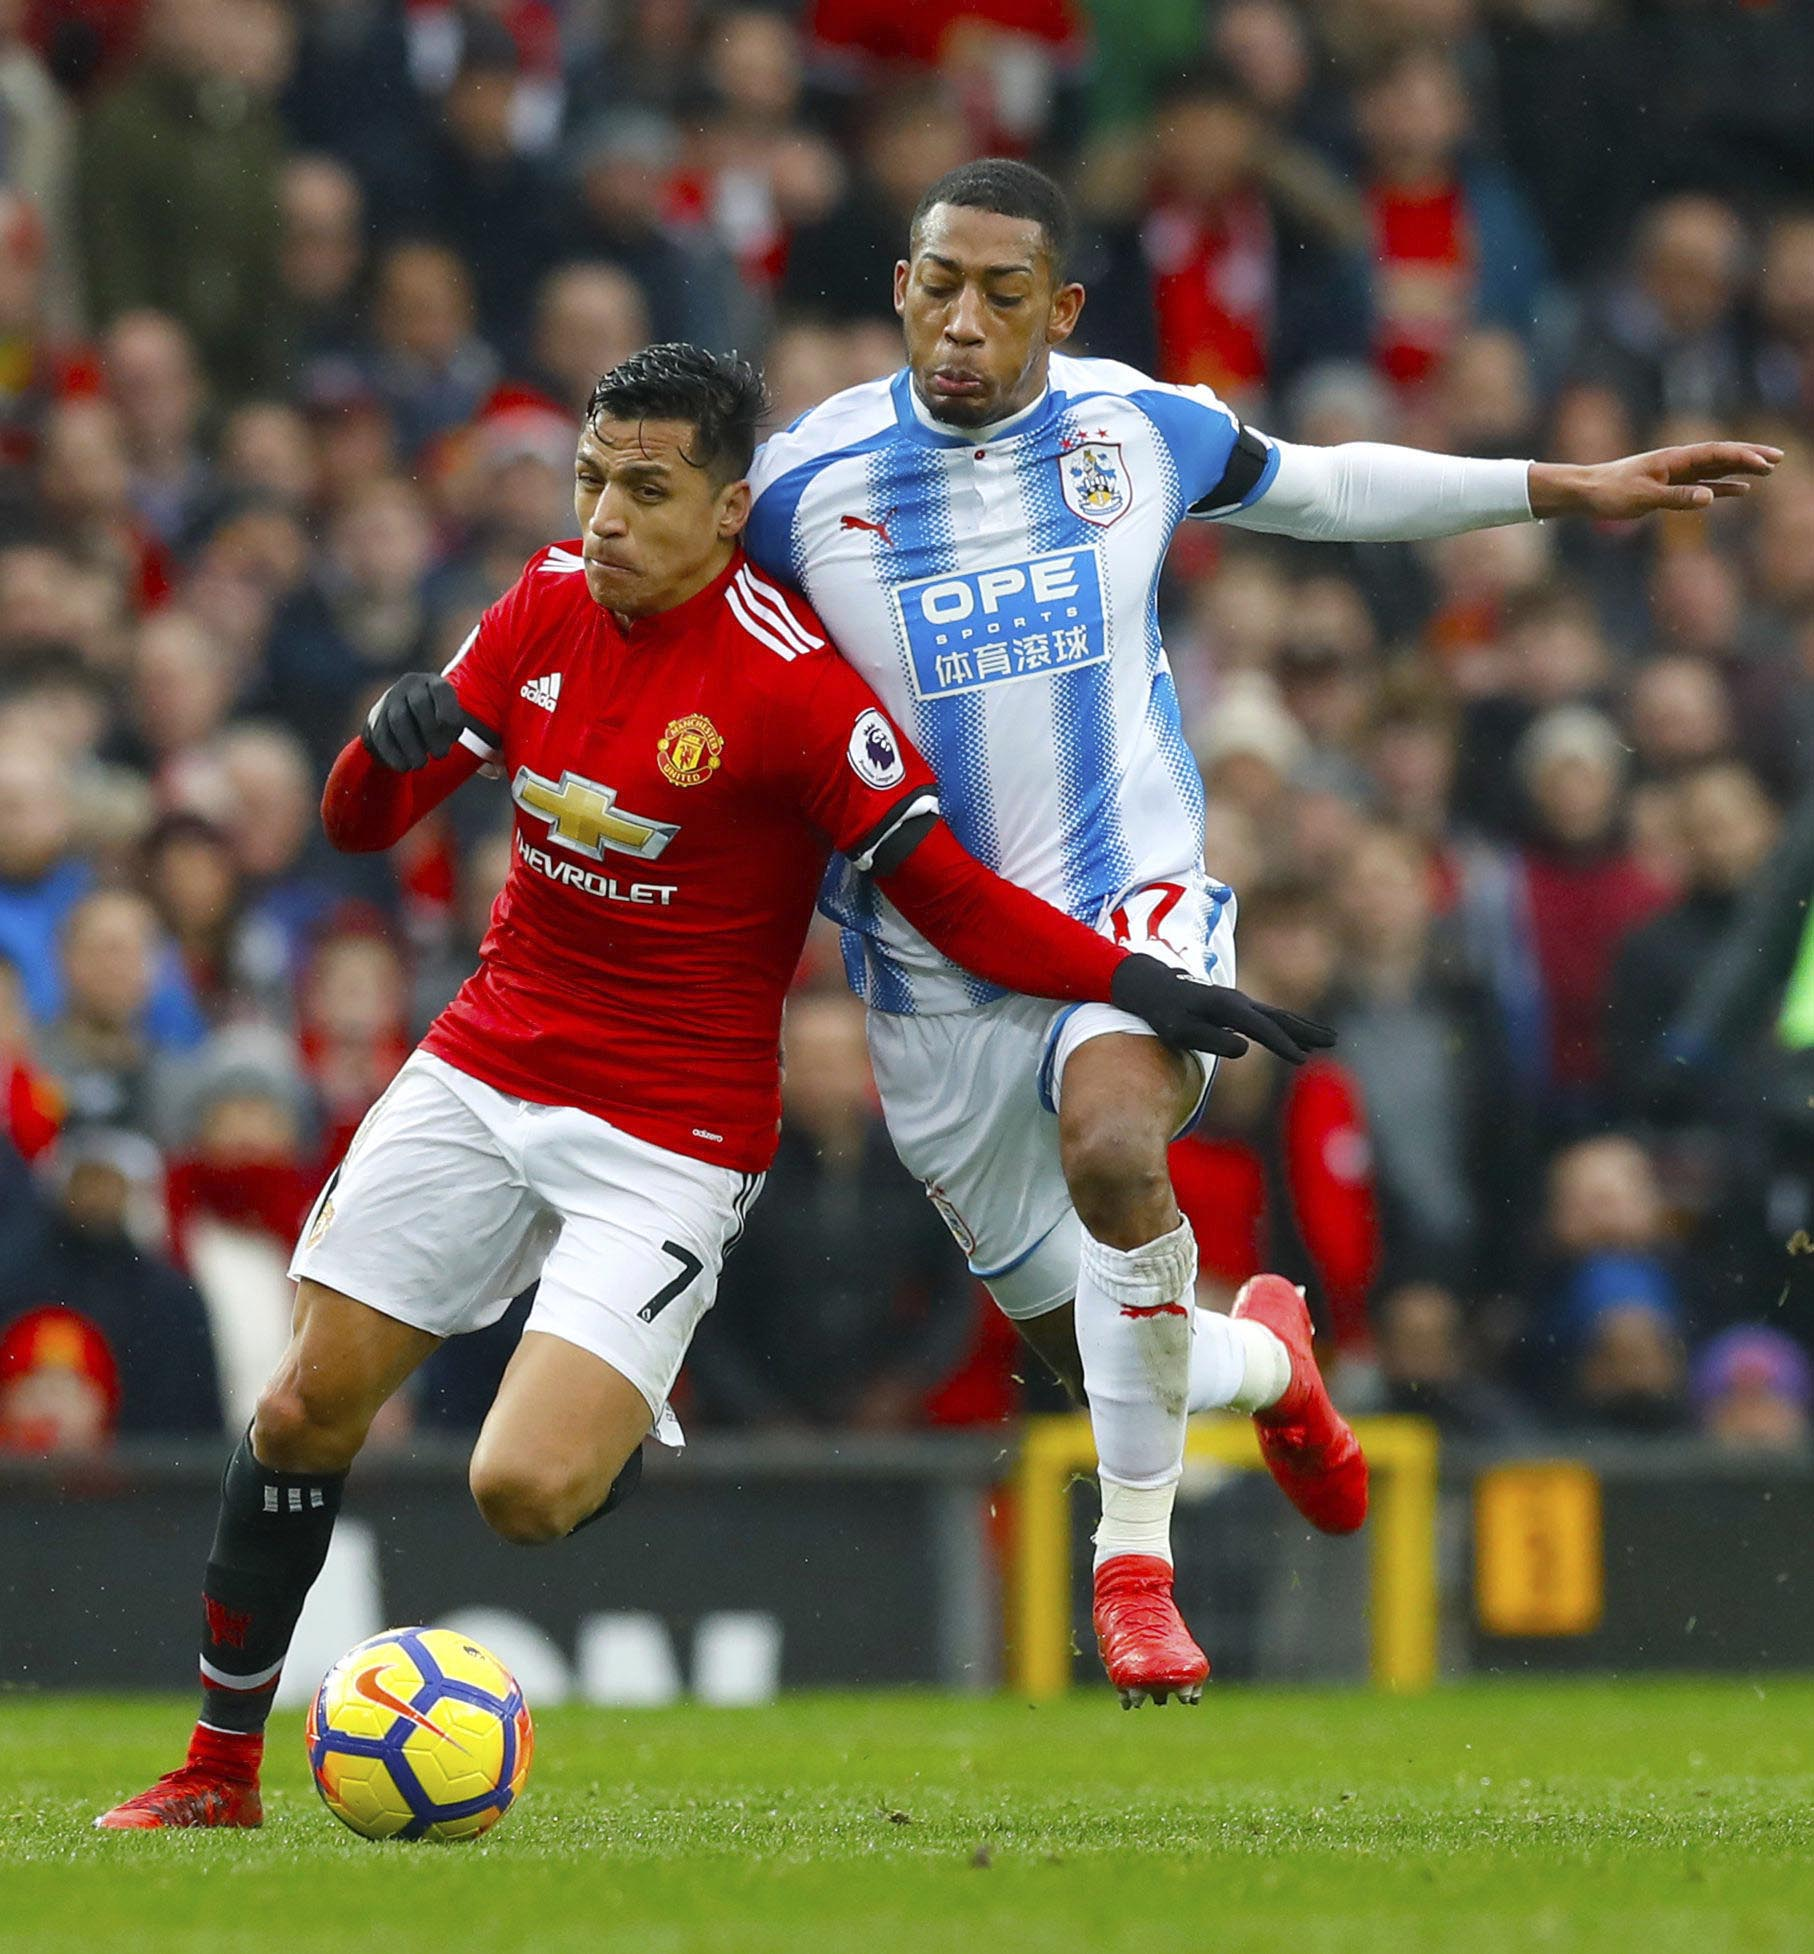 Manchester United's Alexis Sanchez (left), and Huddersfield Town's Rajiv van La Parra in action during their English Premier League soccer match at Old Trafford in Manchester, England, Saturday Feb. 3, 2018. (Martin Rickett/PA via AP)